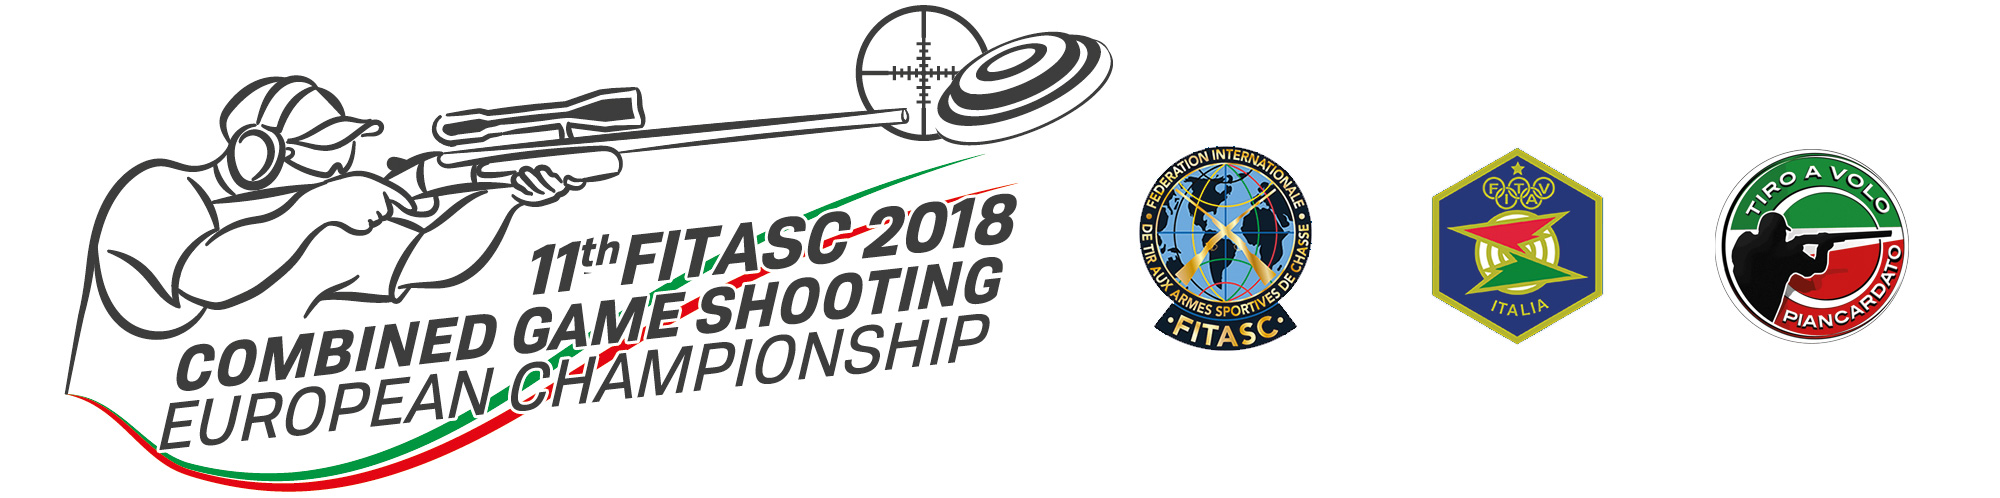 European Fitasc Championship 2018